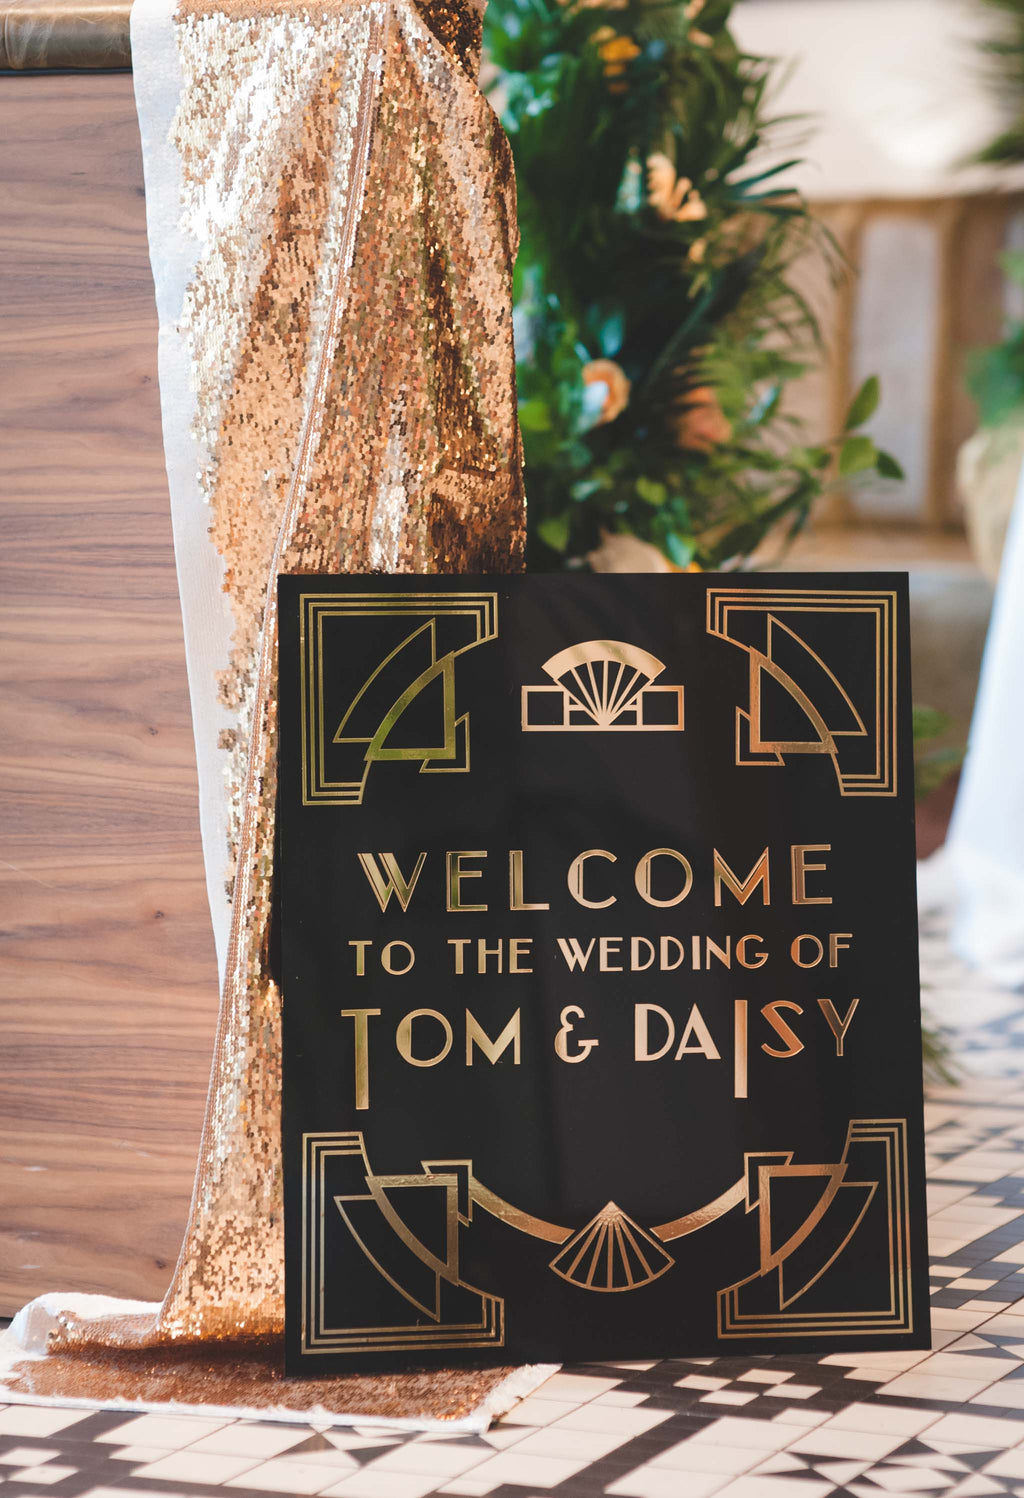 Acrylic black and gold art deco style wedding sign